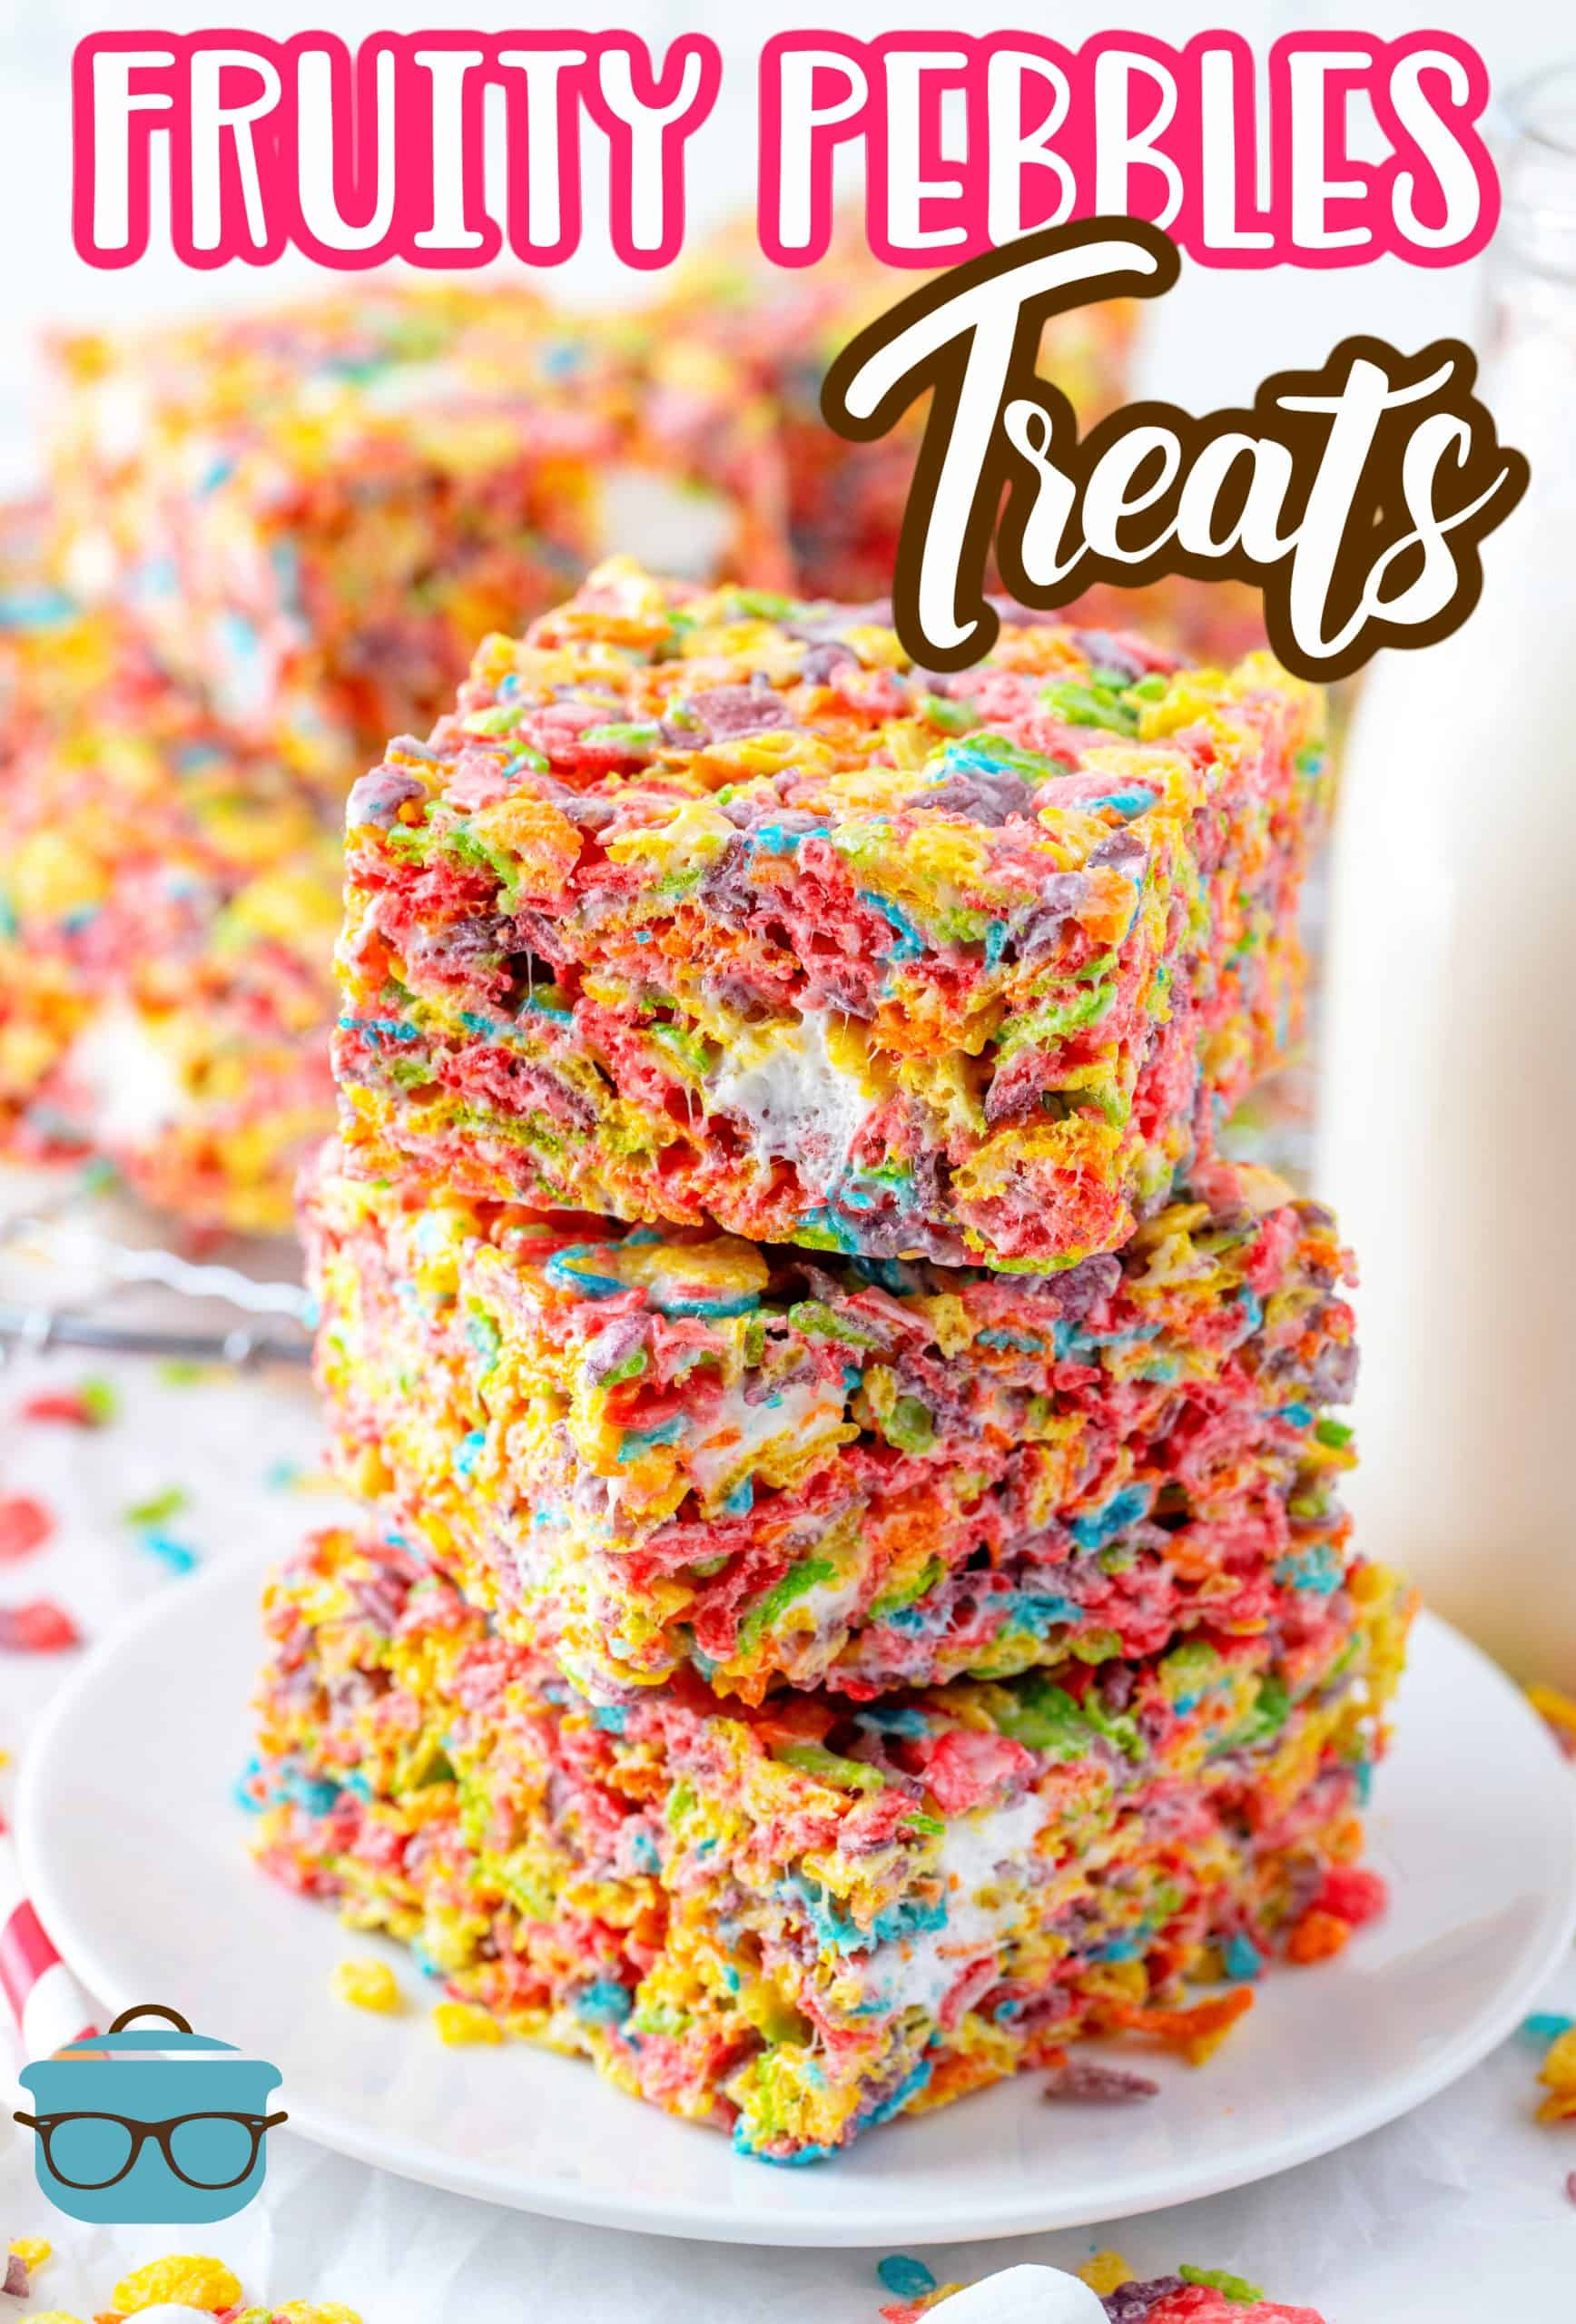 With only 3 ingredients, these Fruity Pebbles Treats are a fun, easy and absolutely tasty bar that comes together quickly and the whole family loves!